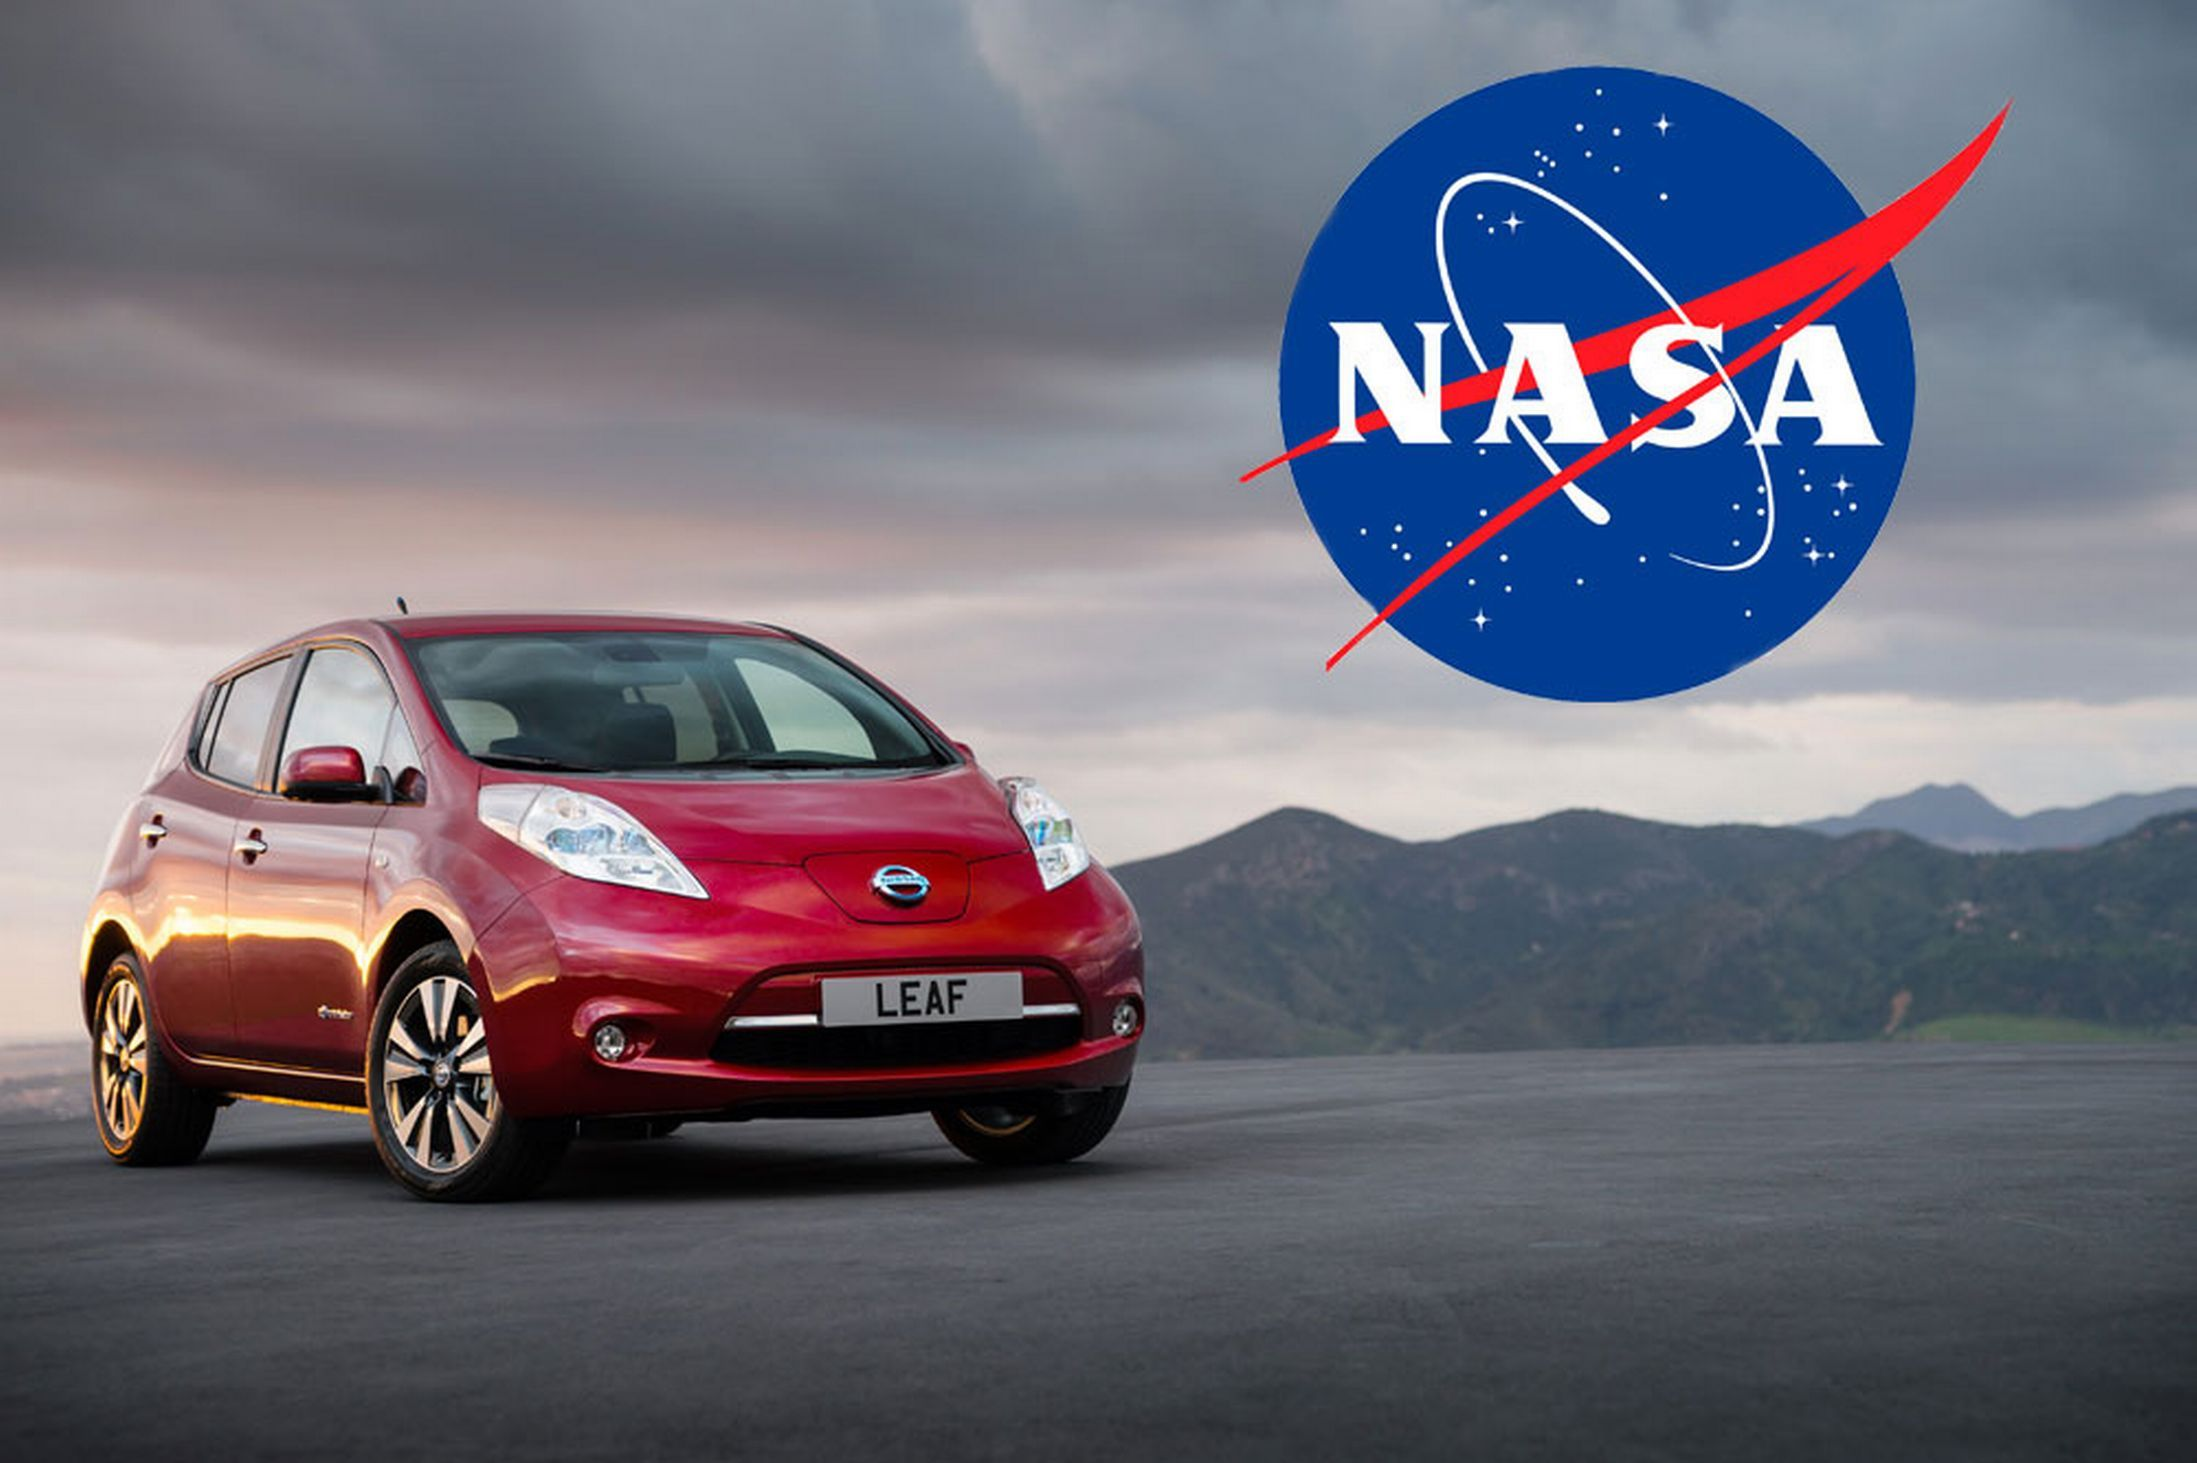 Nissan And Nasa Are Teaming Up To Develop Self Driving Car Technology They Aim To Introduce The Autonomous Driving Technol Nissan Nasa Social Media Consultant